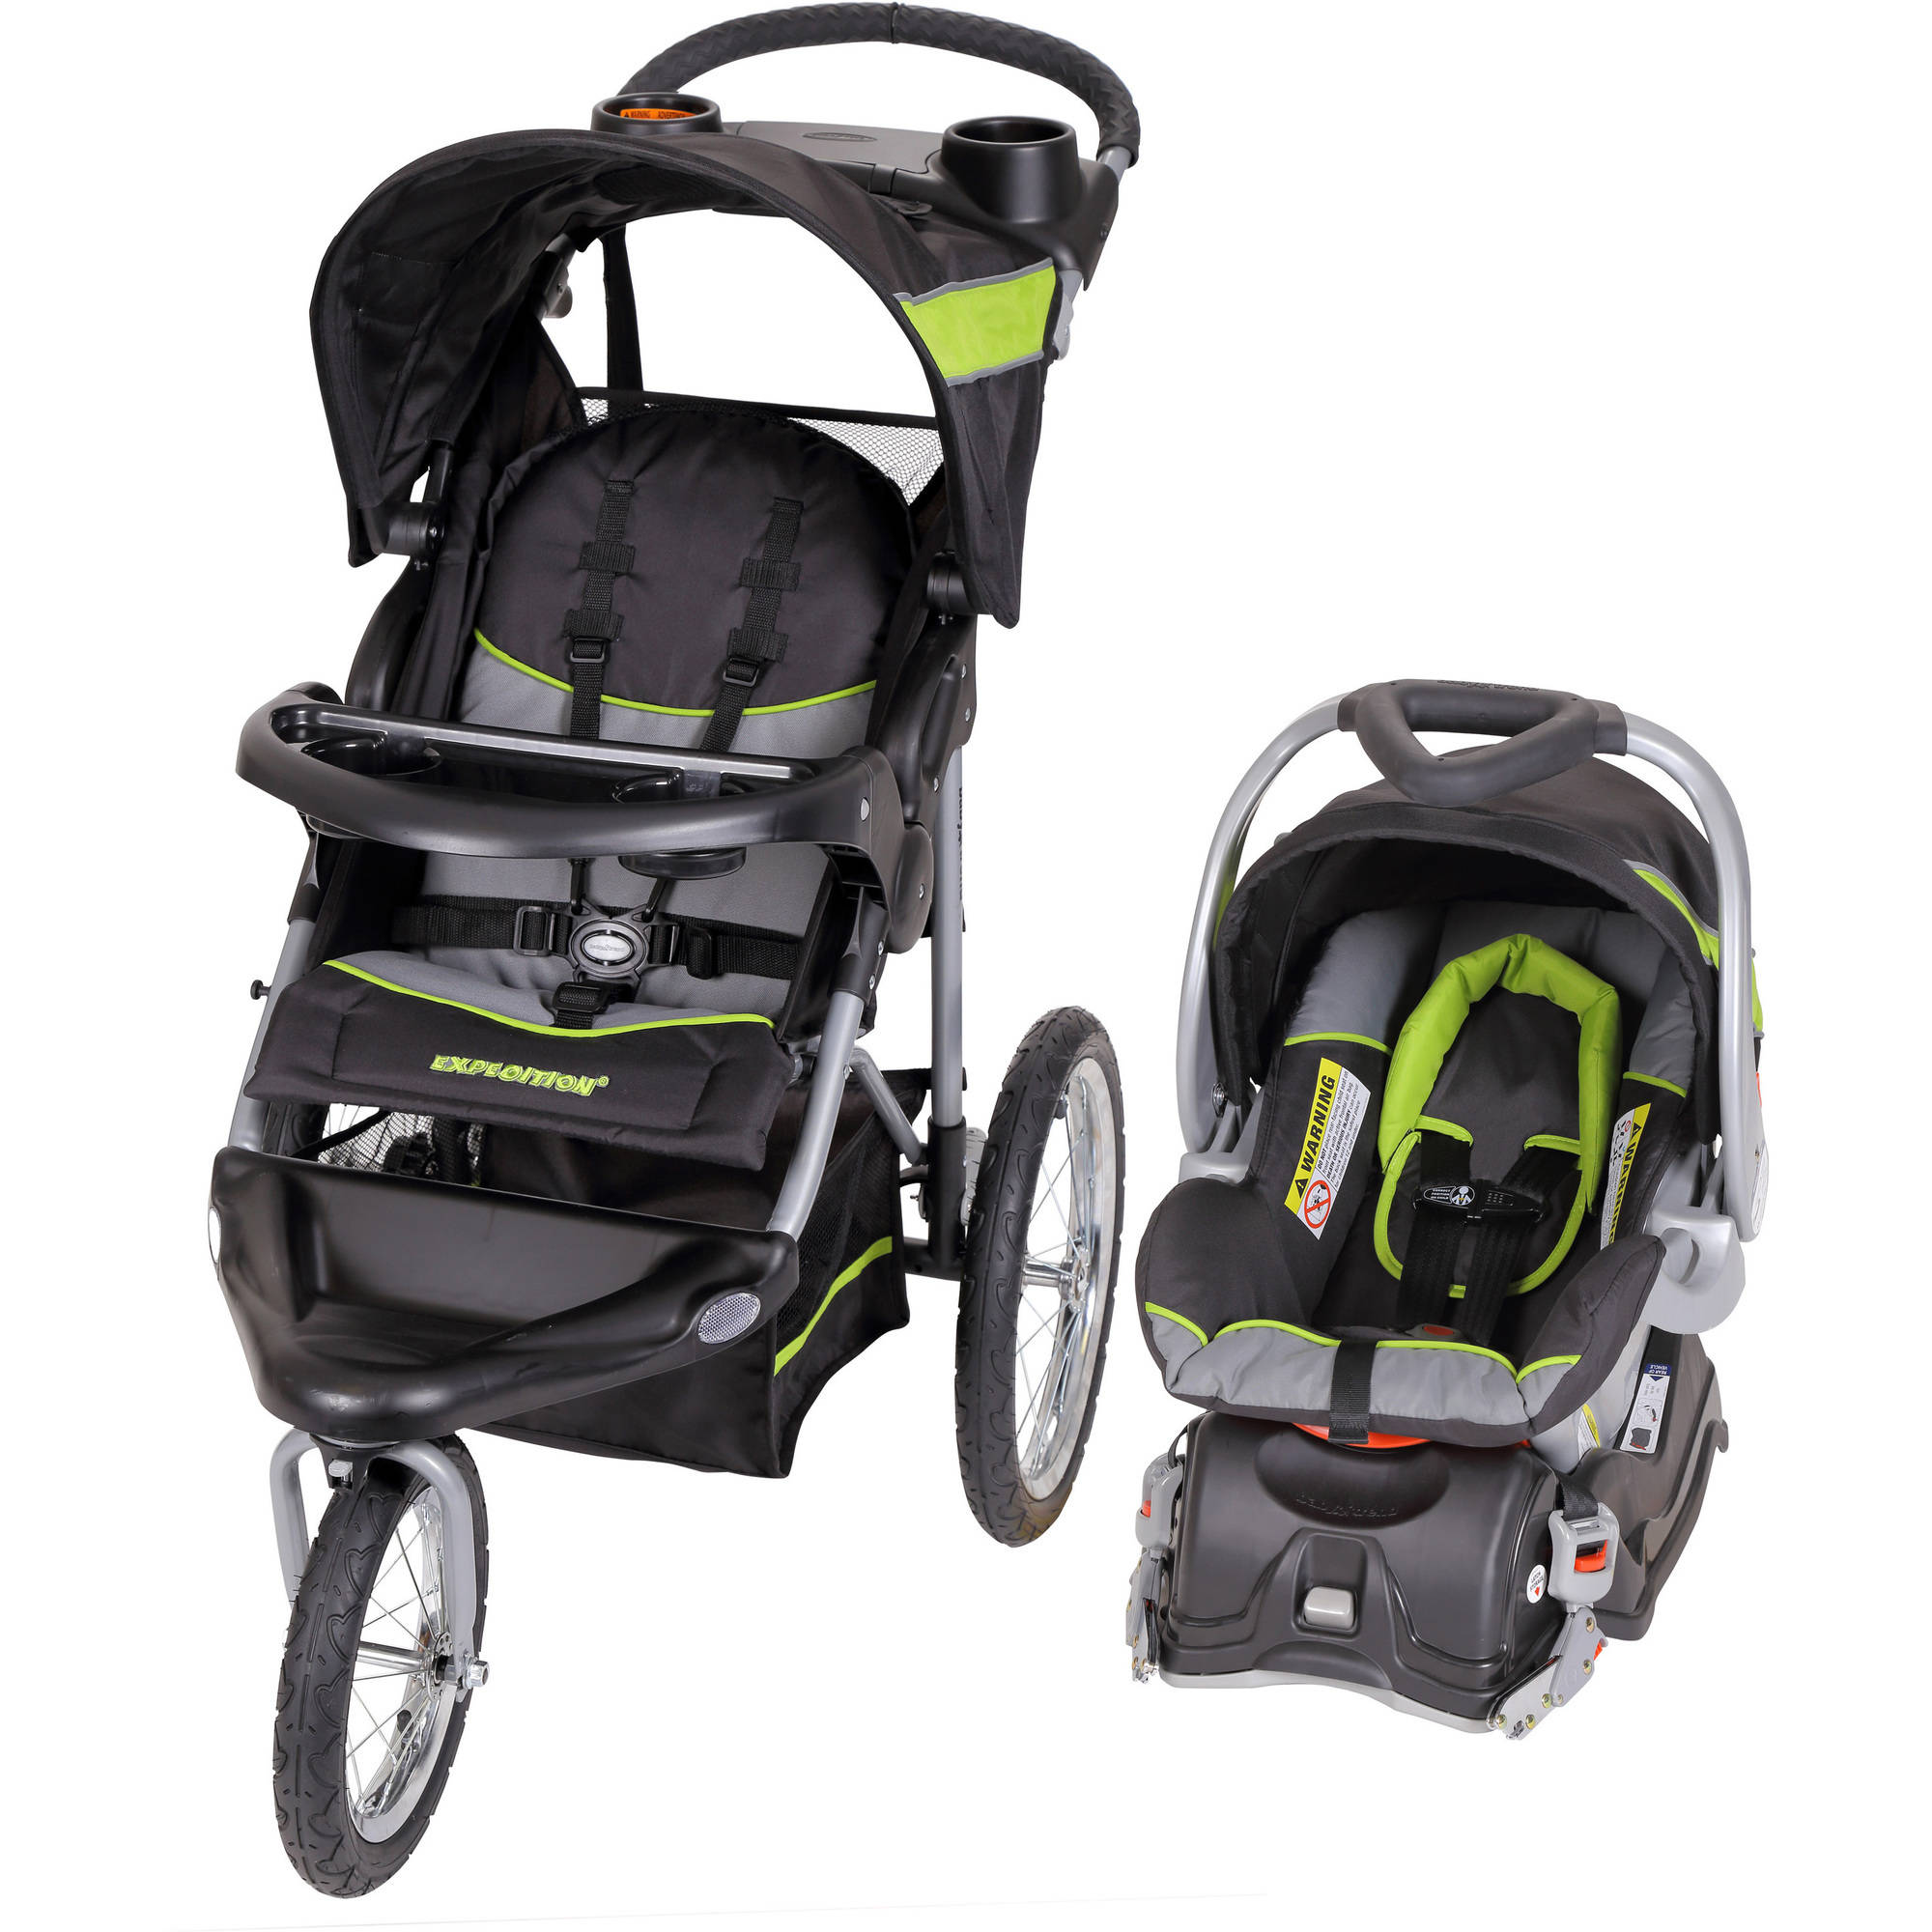 Baby Trend Expedition Jogger Travel System, Millennium Green